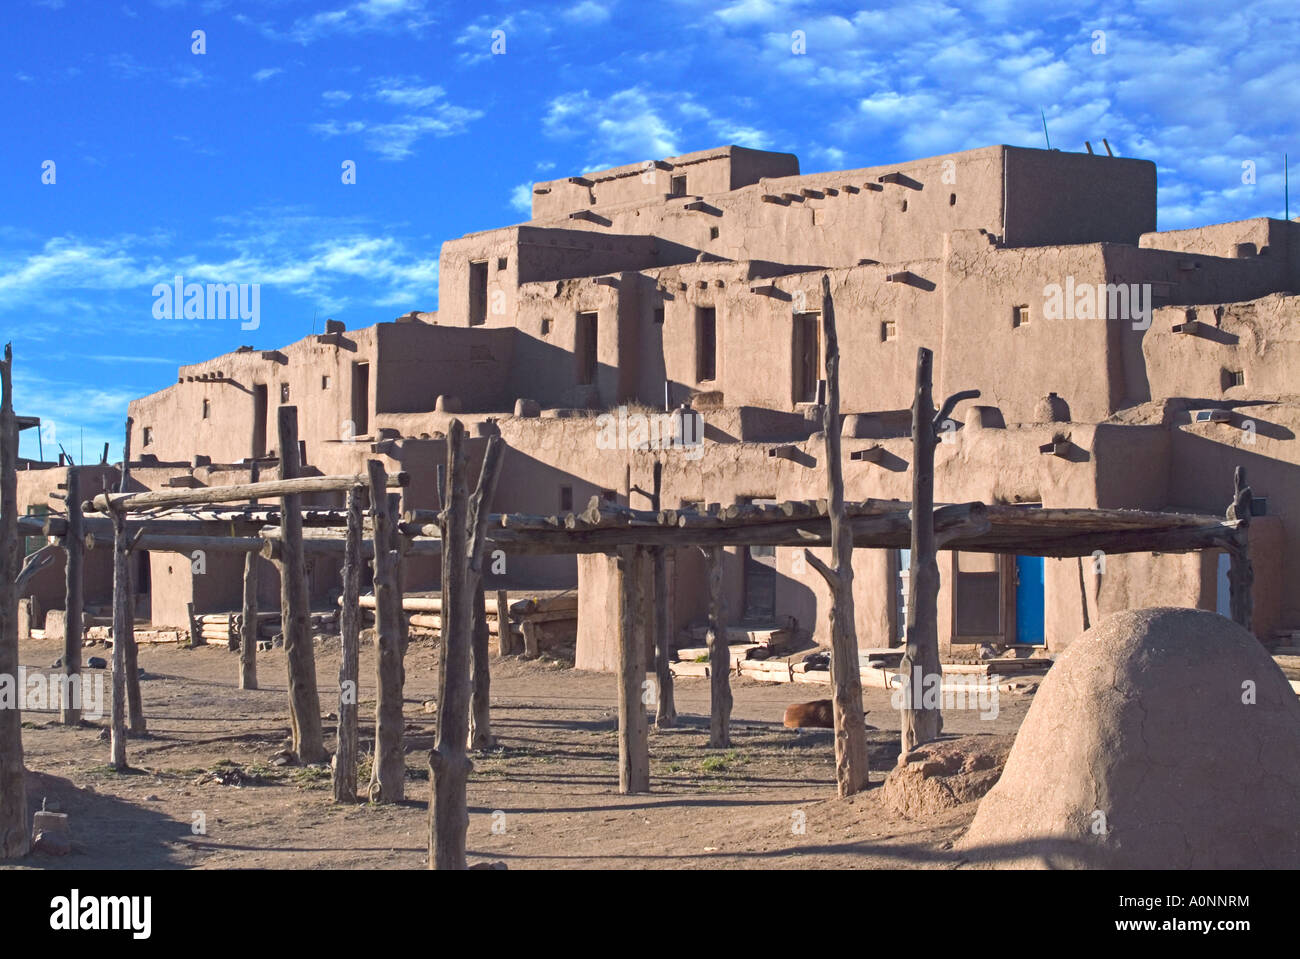 Native American Indian Homes On Pueblo Indian Reservation Stock